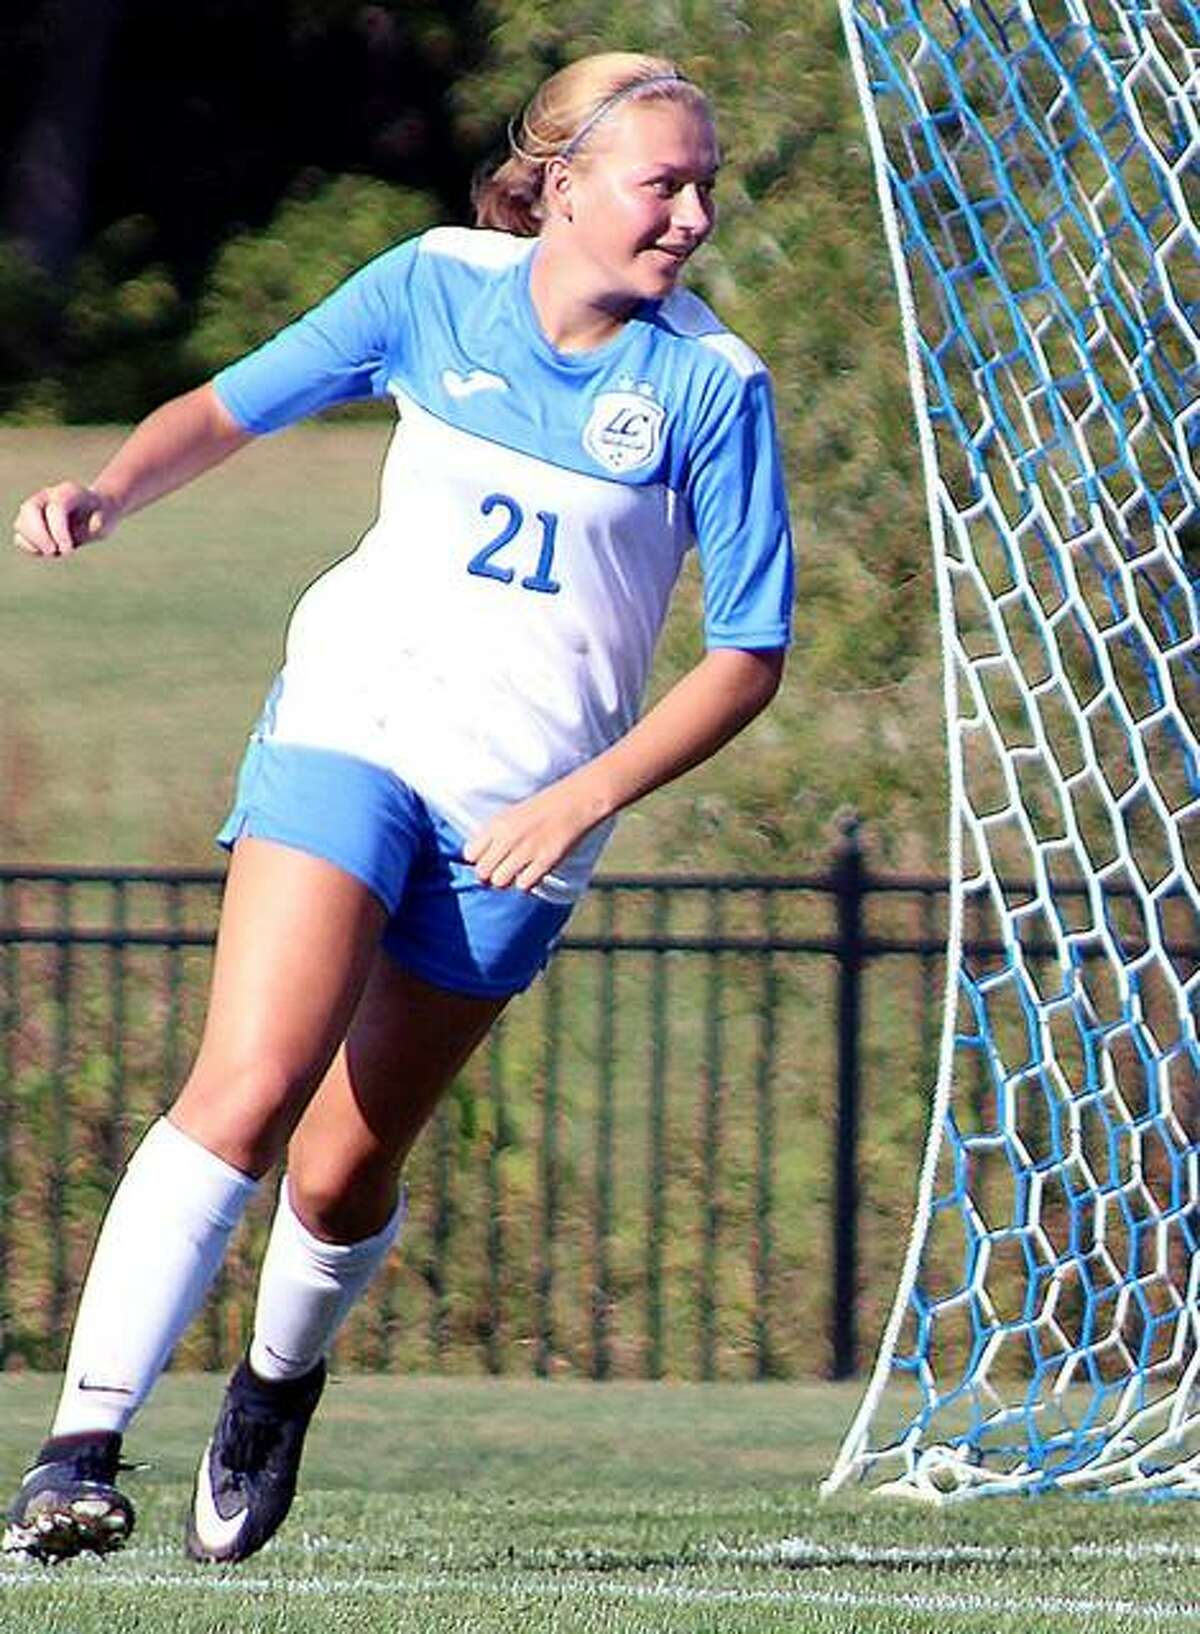 Emma Lucas celebrates a goal during her days with LCCC. Lucas, a Roxana High grad, now plays at Cumberland University in Tennessee.